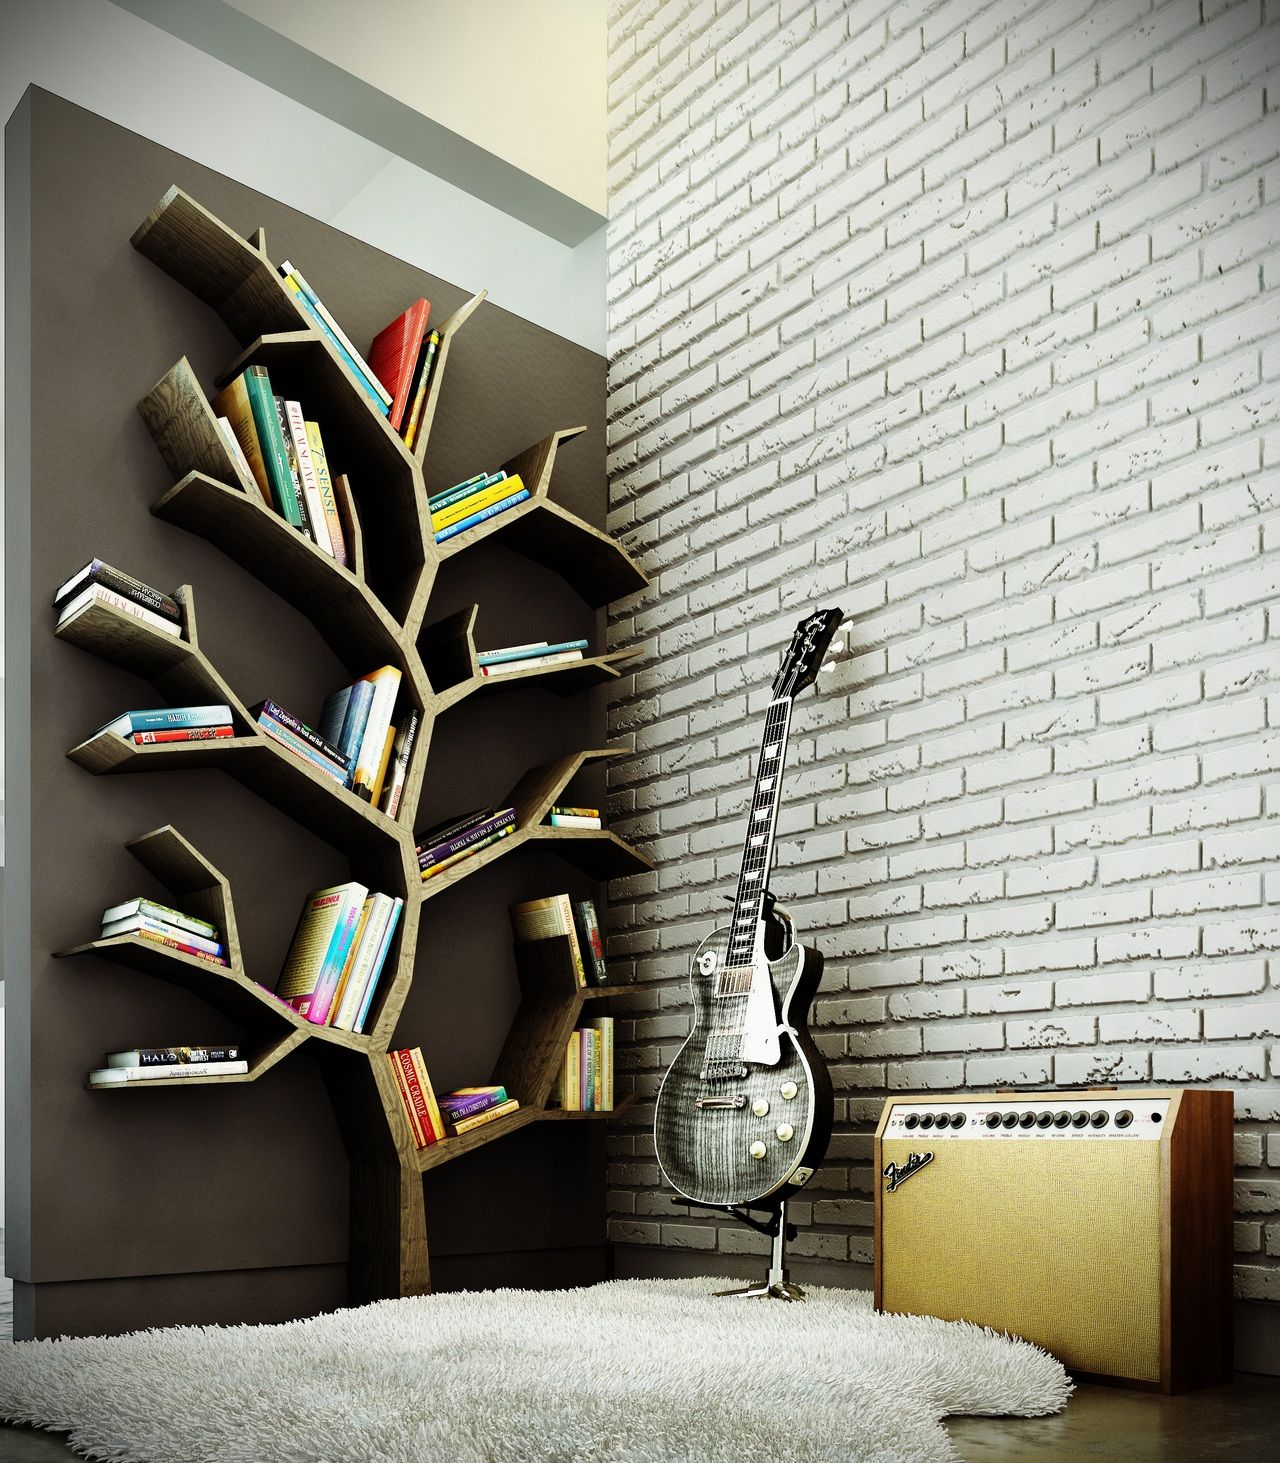 I wonder how it is able to hold so many books?  Still, awesome.